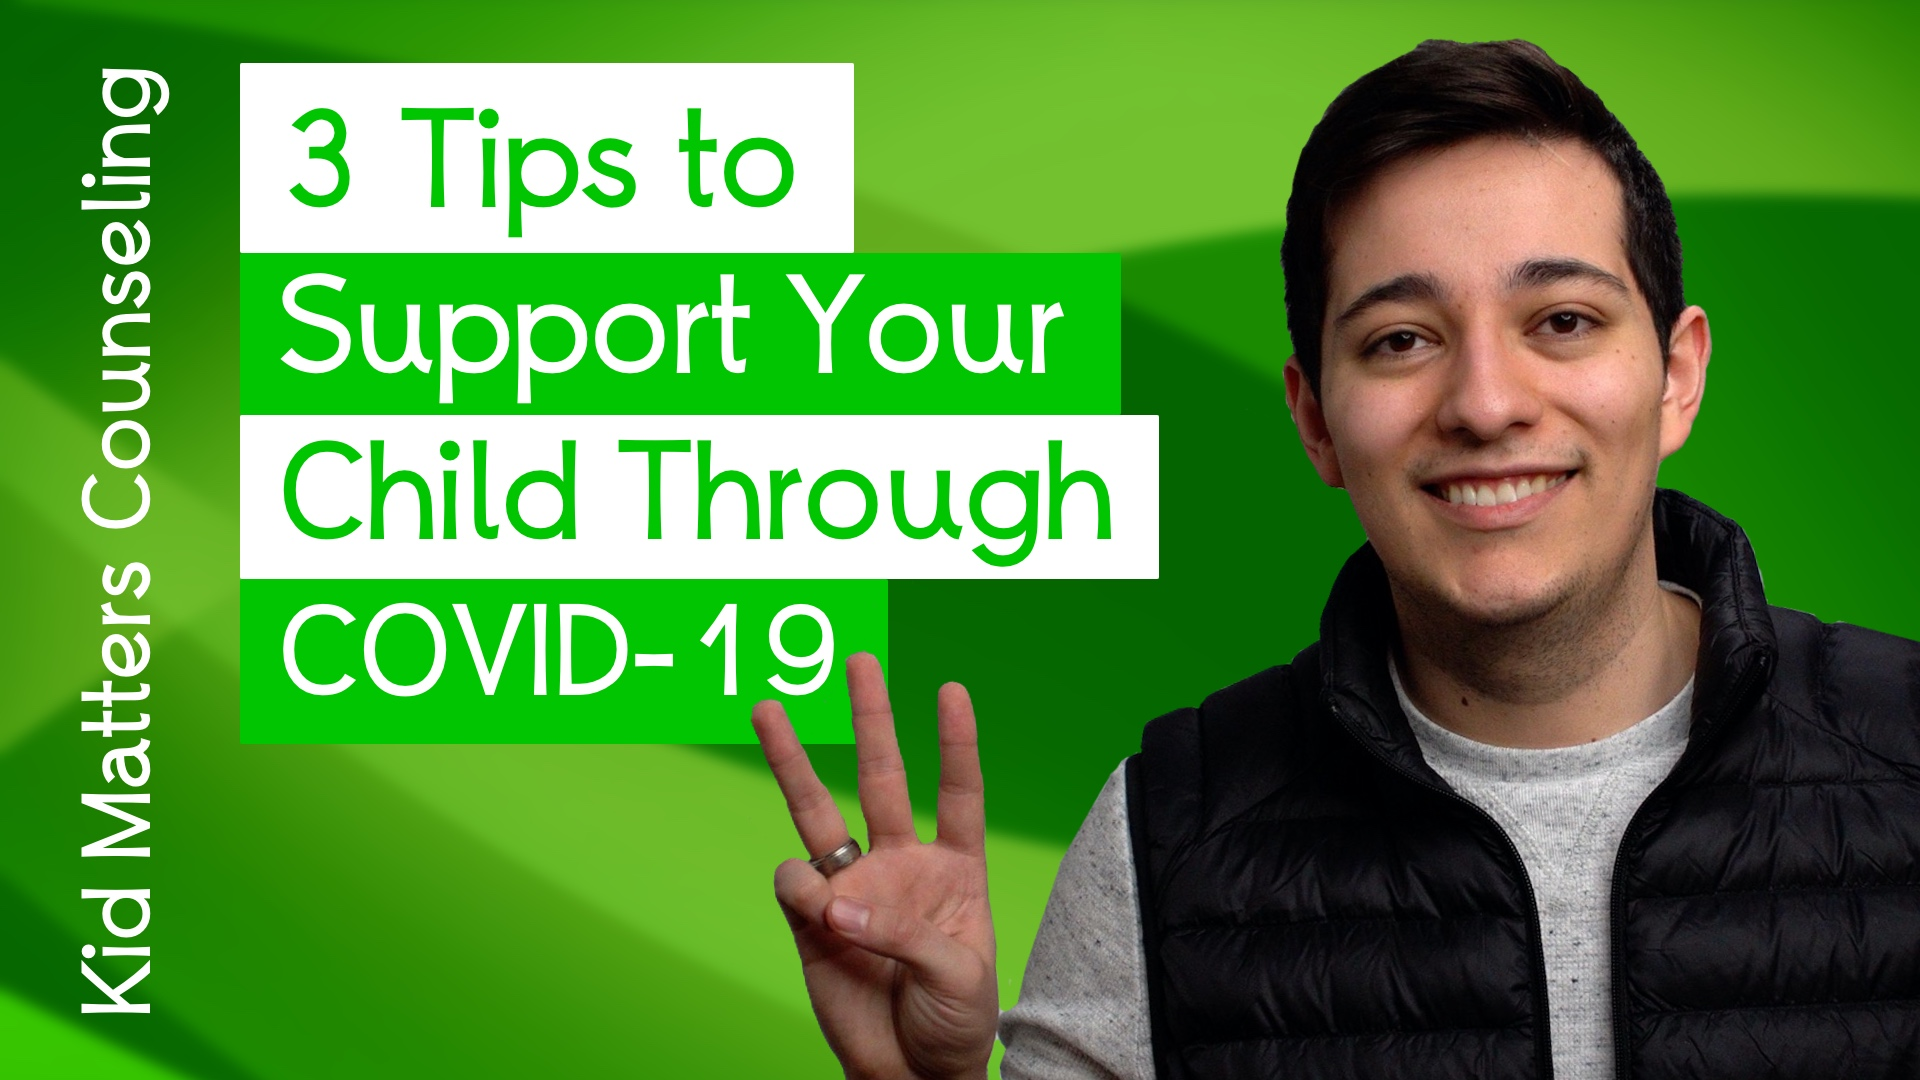 3 Tips to Support Your Child Through COVID-19